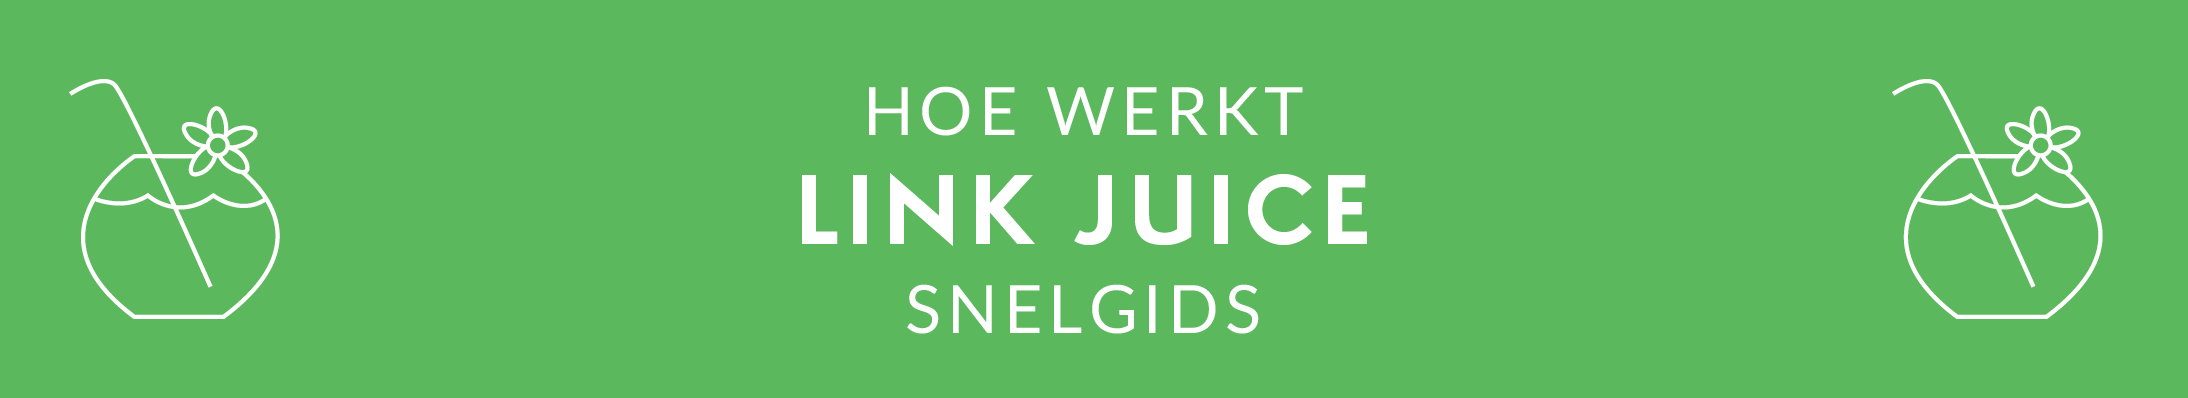 NL - SEO GUIDE - Link Juice